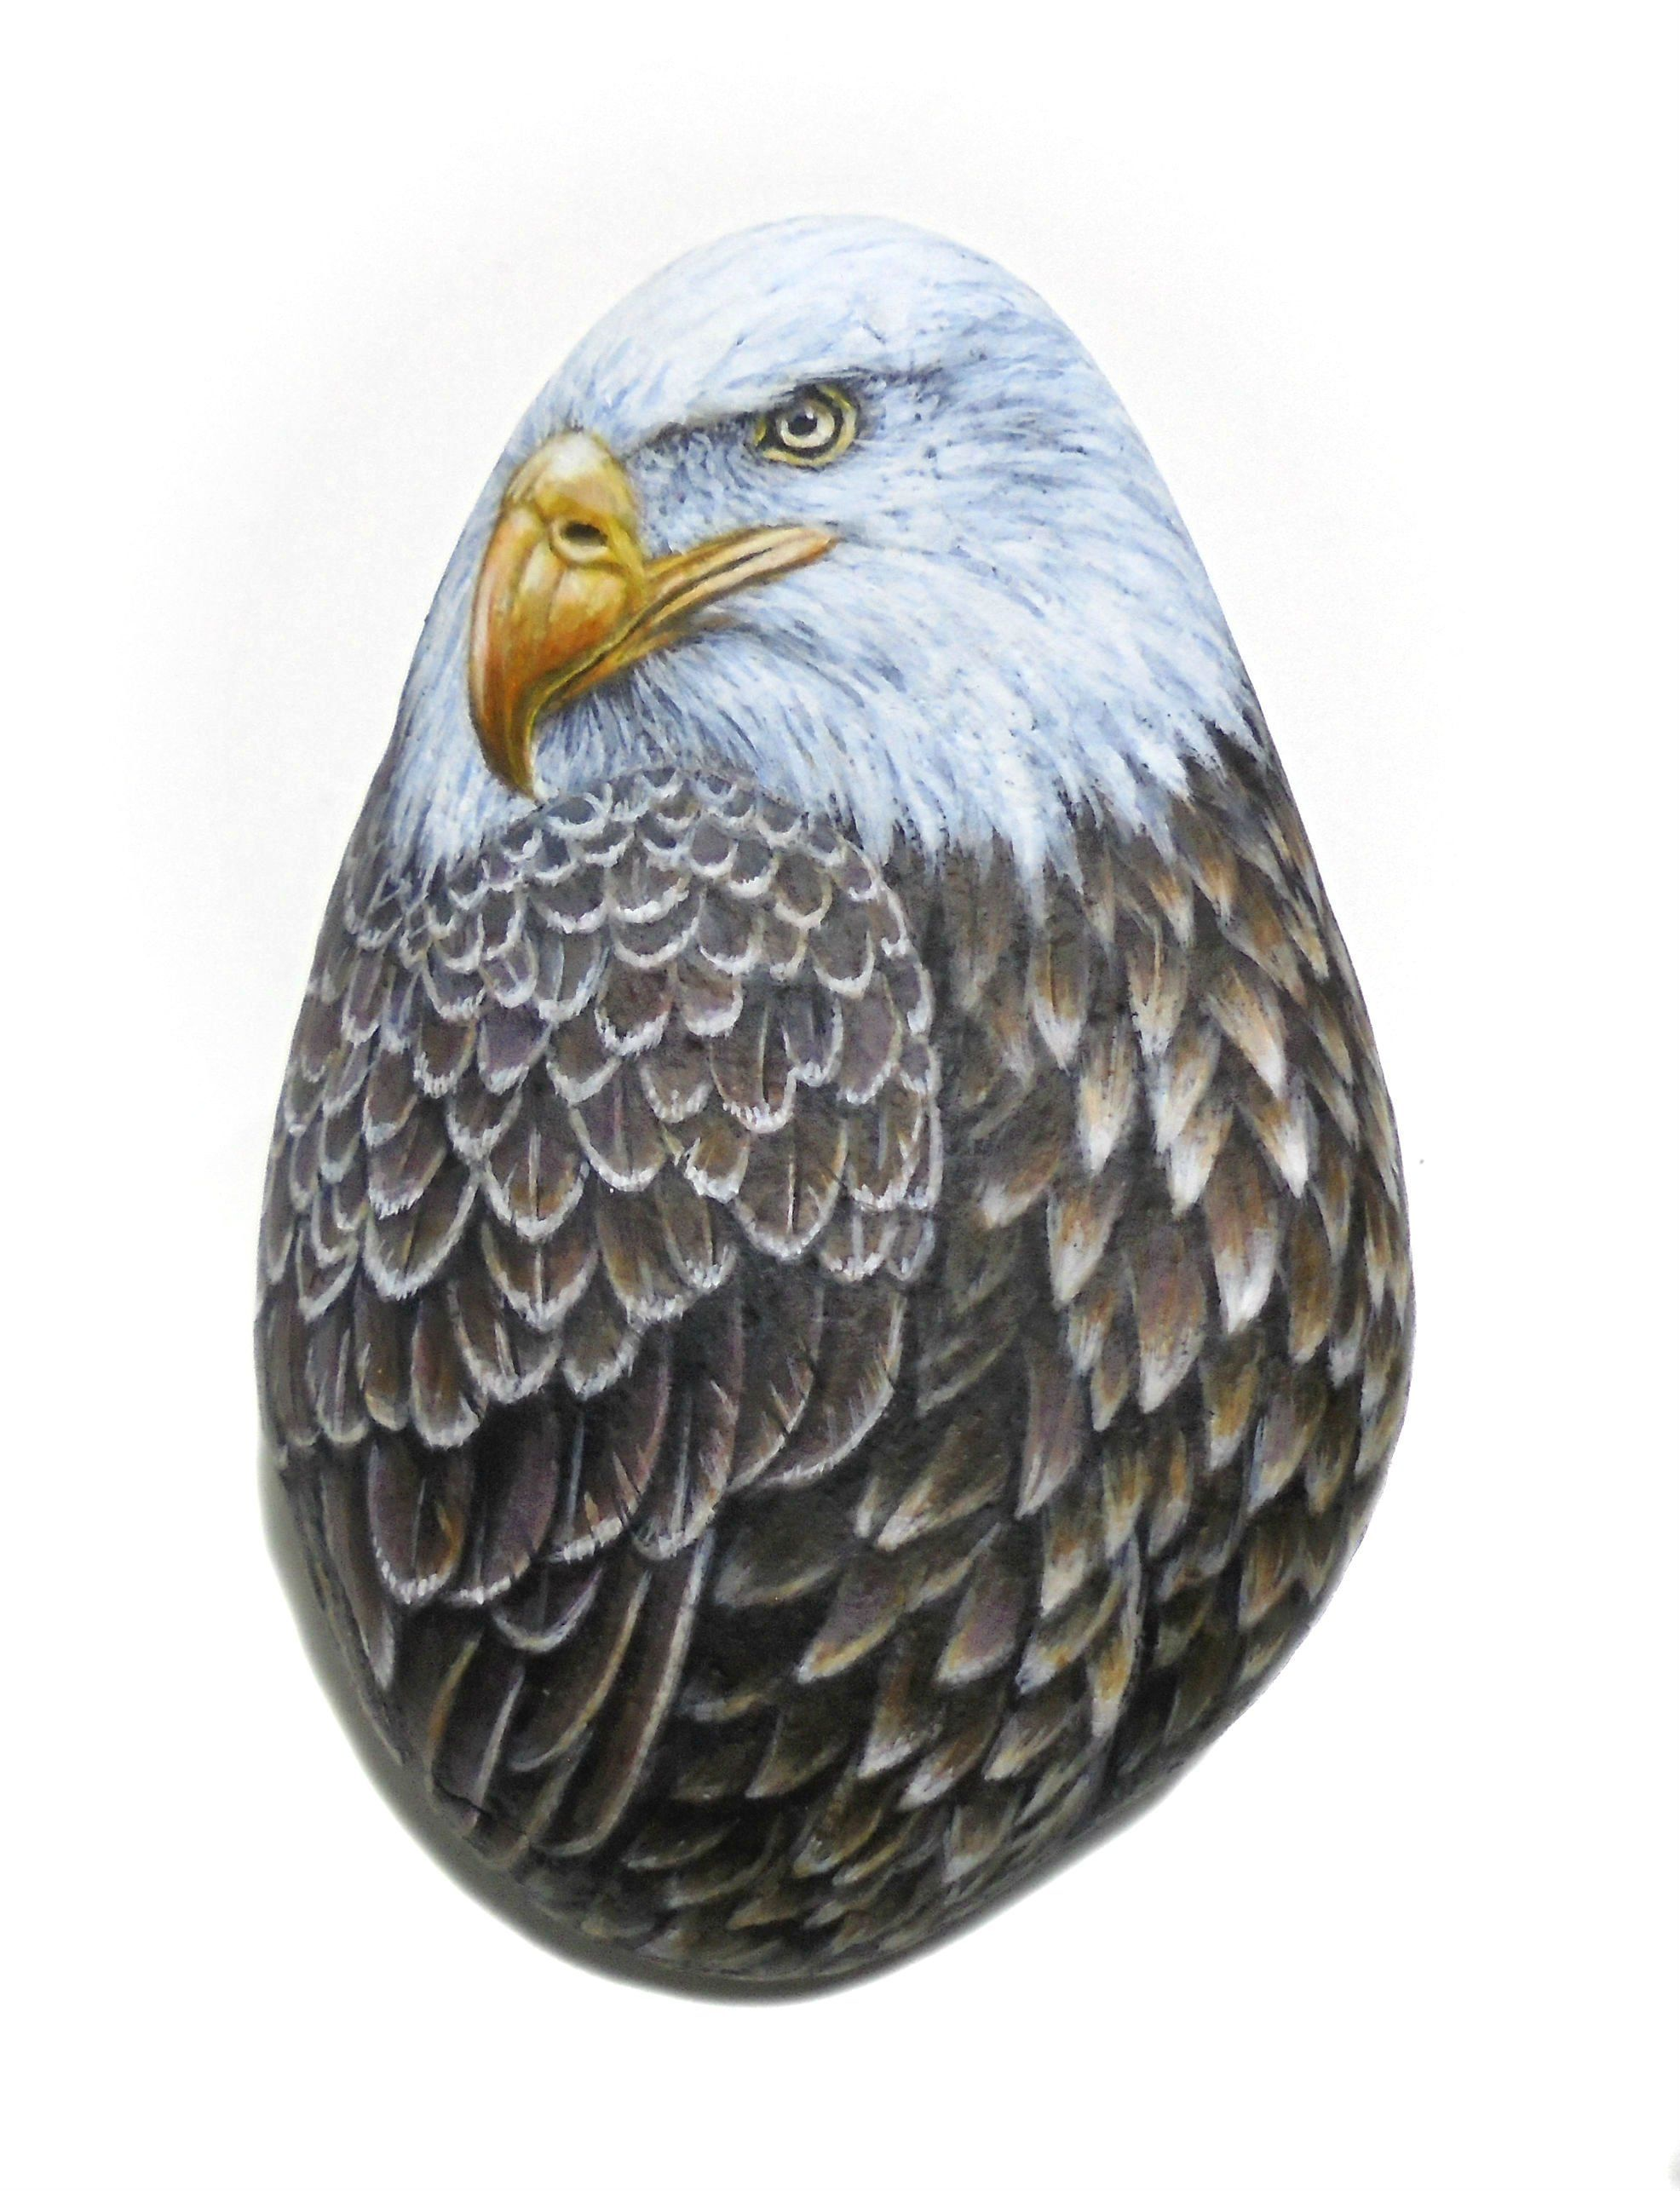 Bald Eagle Hand Painted Stone Bird Painting Home Decor Rock Animal Acrylic And Finished With Gloss Varnish